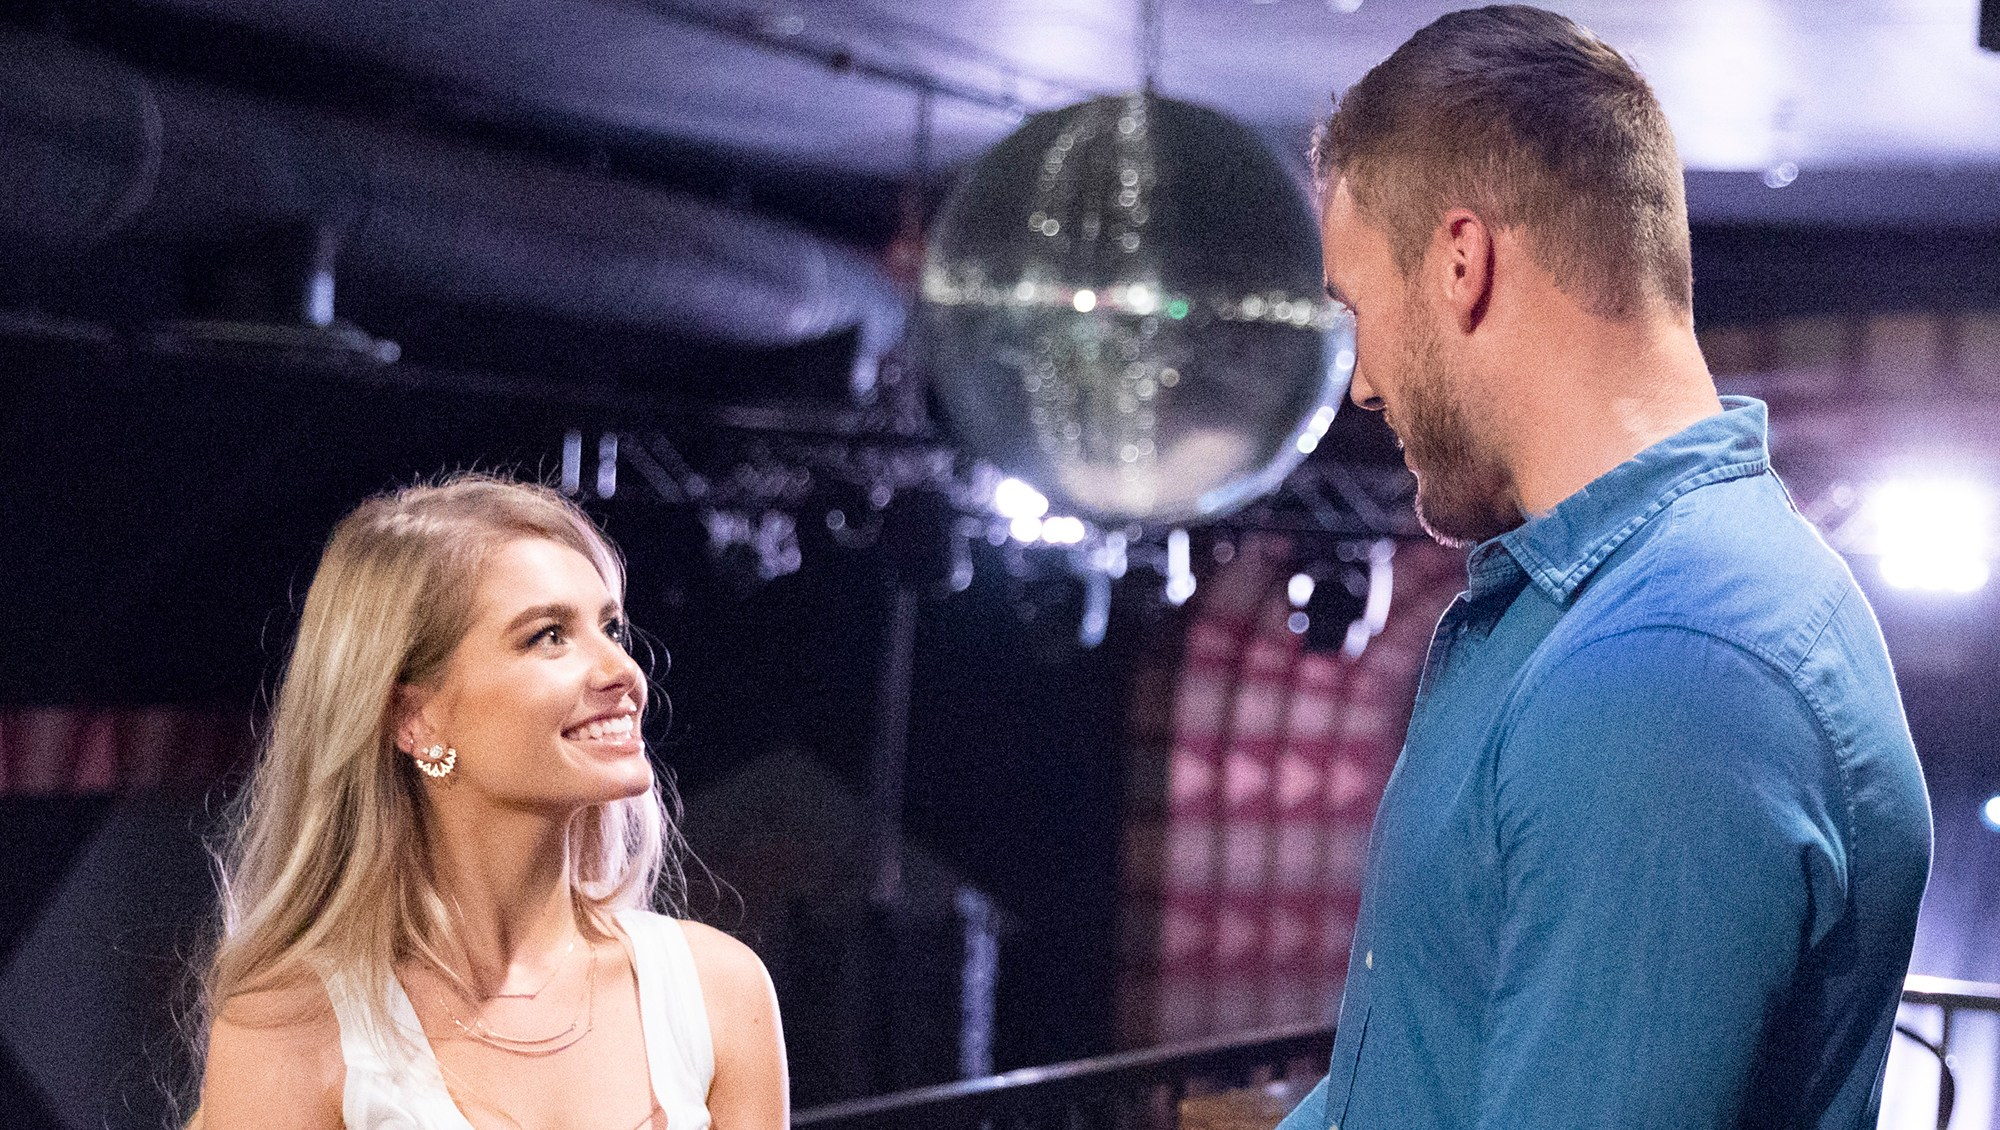 'Bachelor' Contestant Demi Burnett Shades Colton Underwood's Ex-Girlfriend Tia Booth